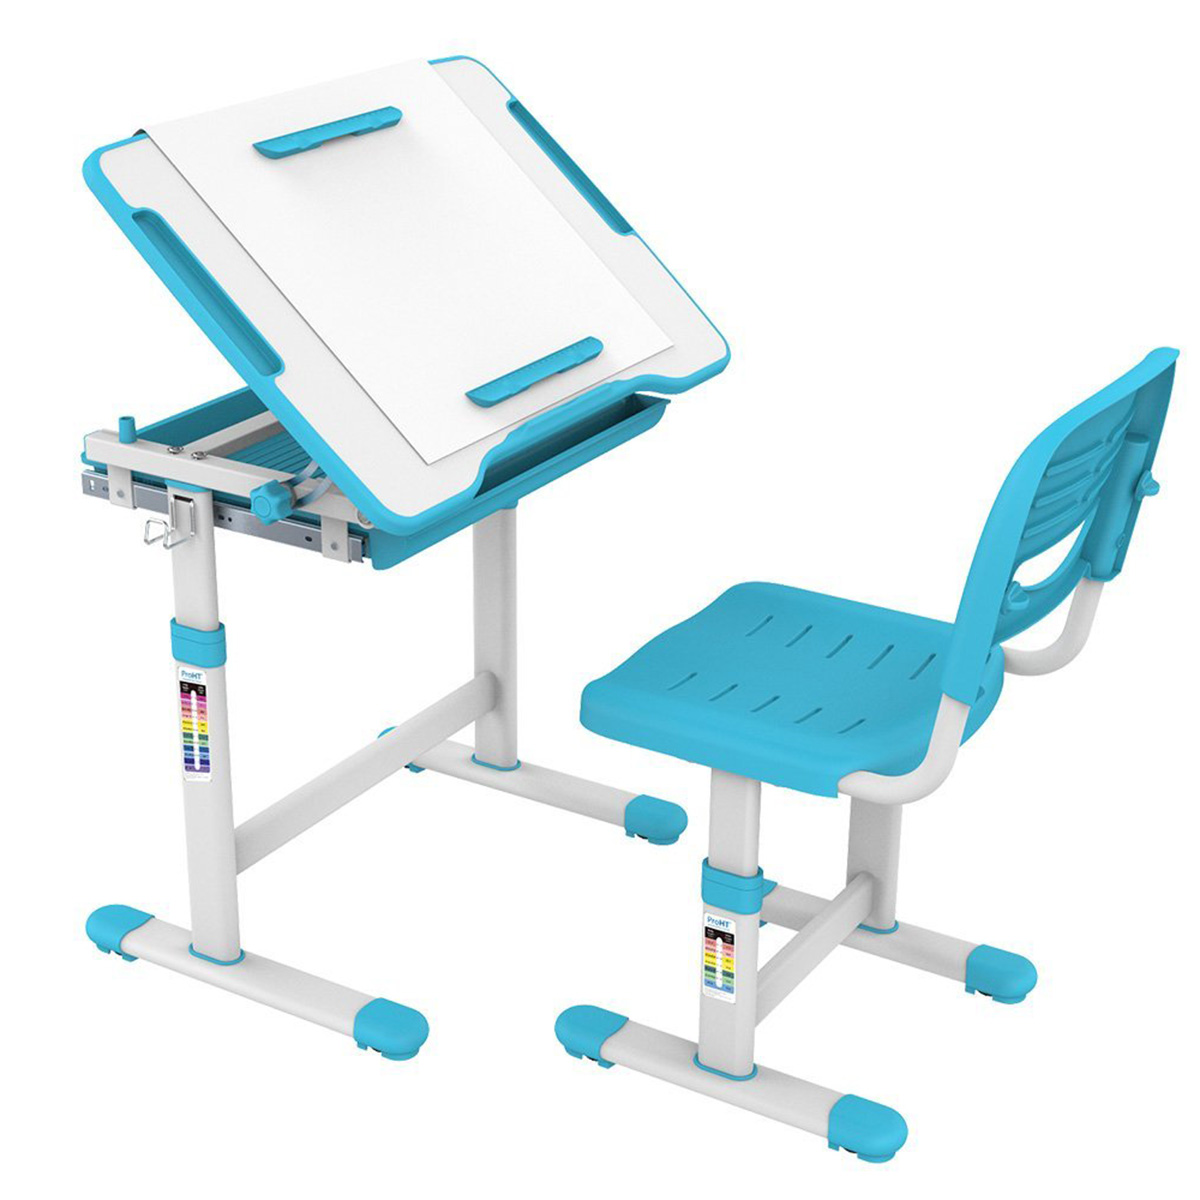 KidzDesk KD26B Kids Desk and Chair